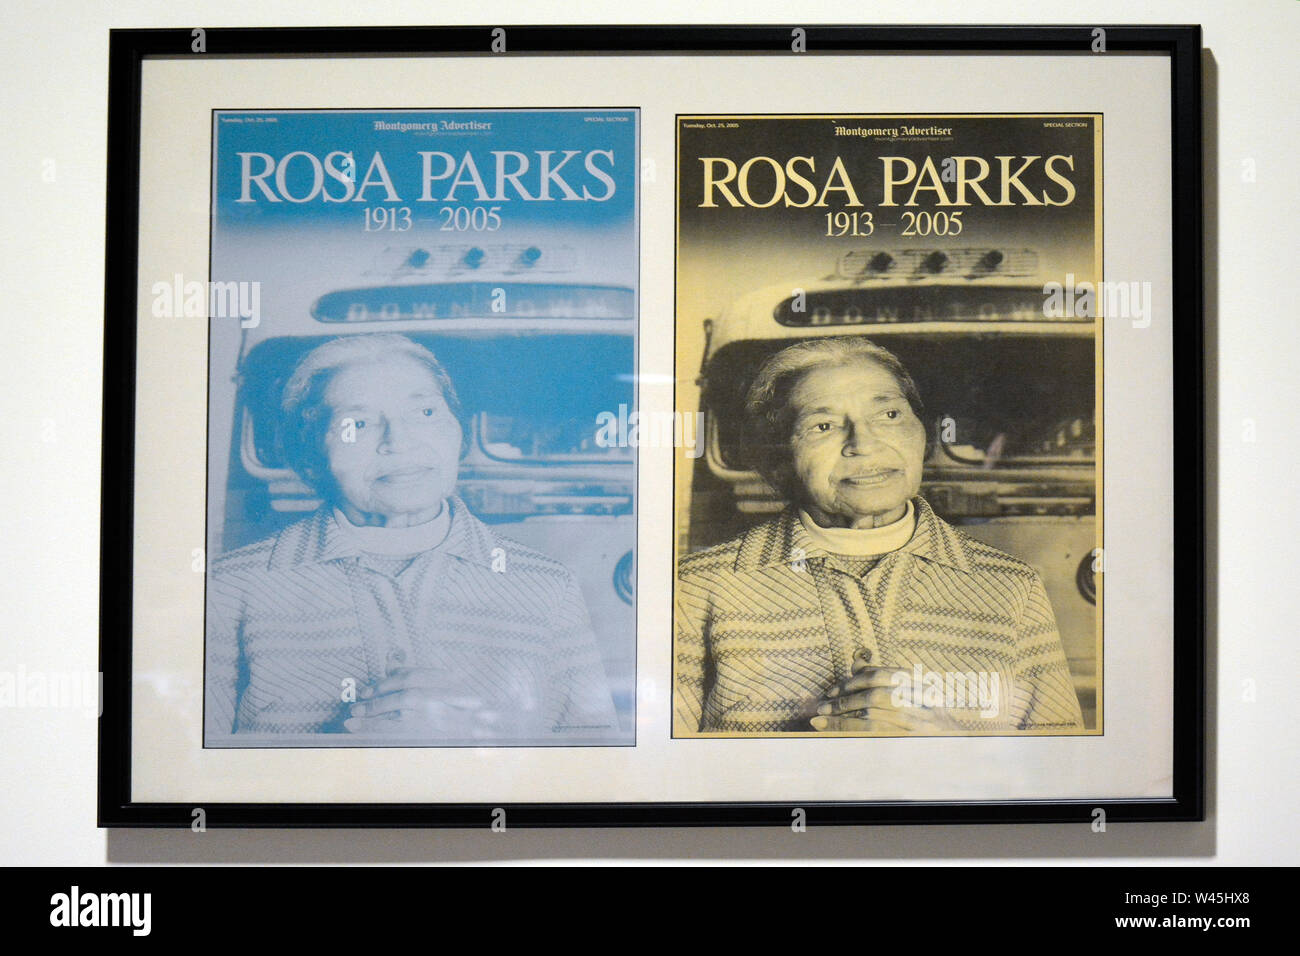 Rosa Parks Library Museum Stock Photos & Rosa Parks Library